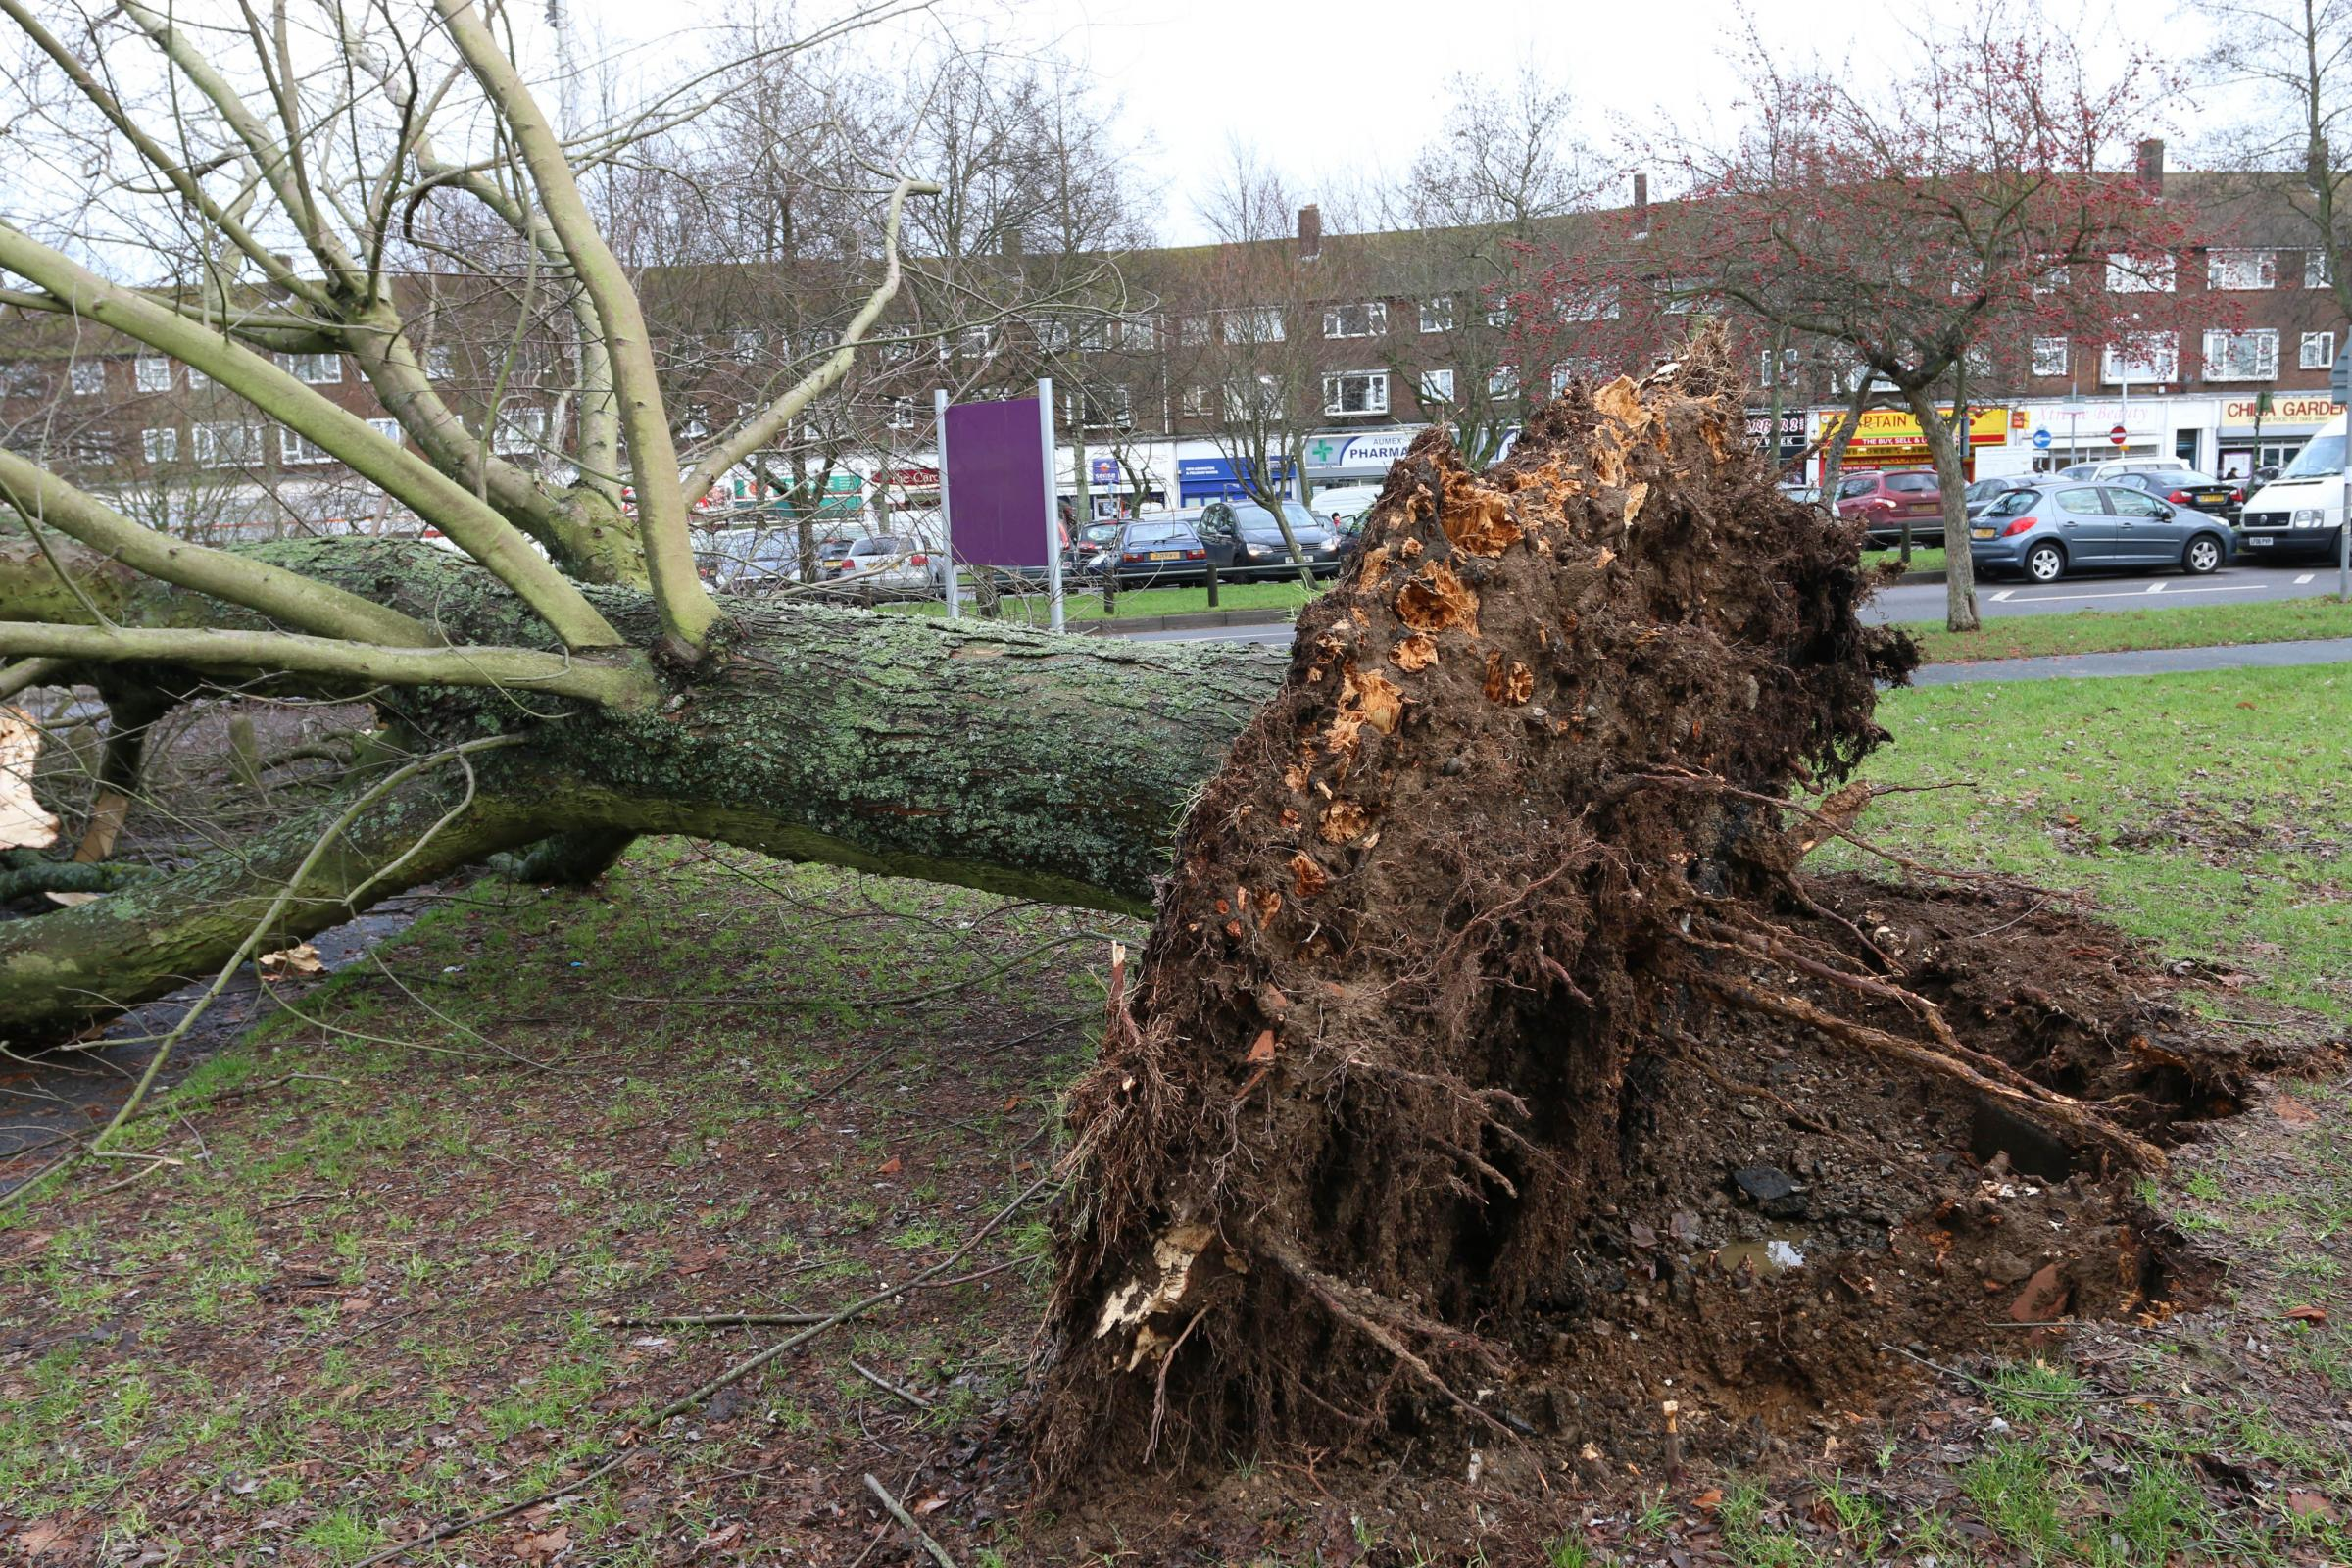 A felled tree outside New Addington leisure centre - one of 324 torn down last week